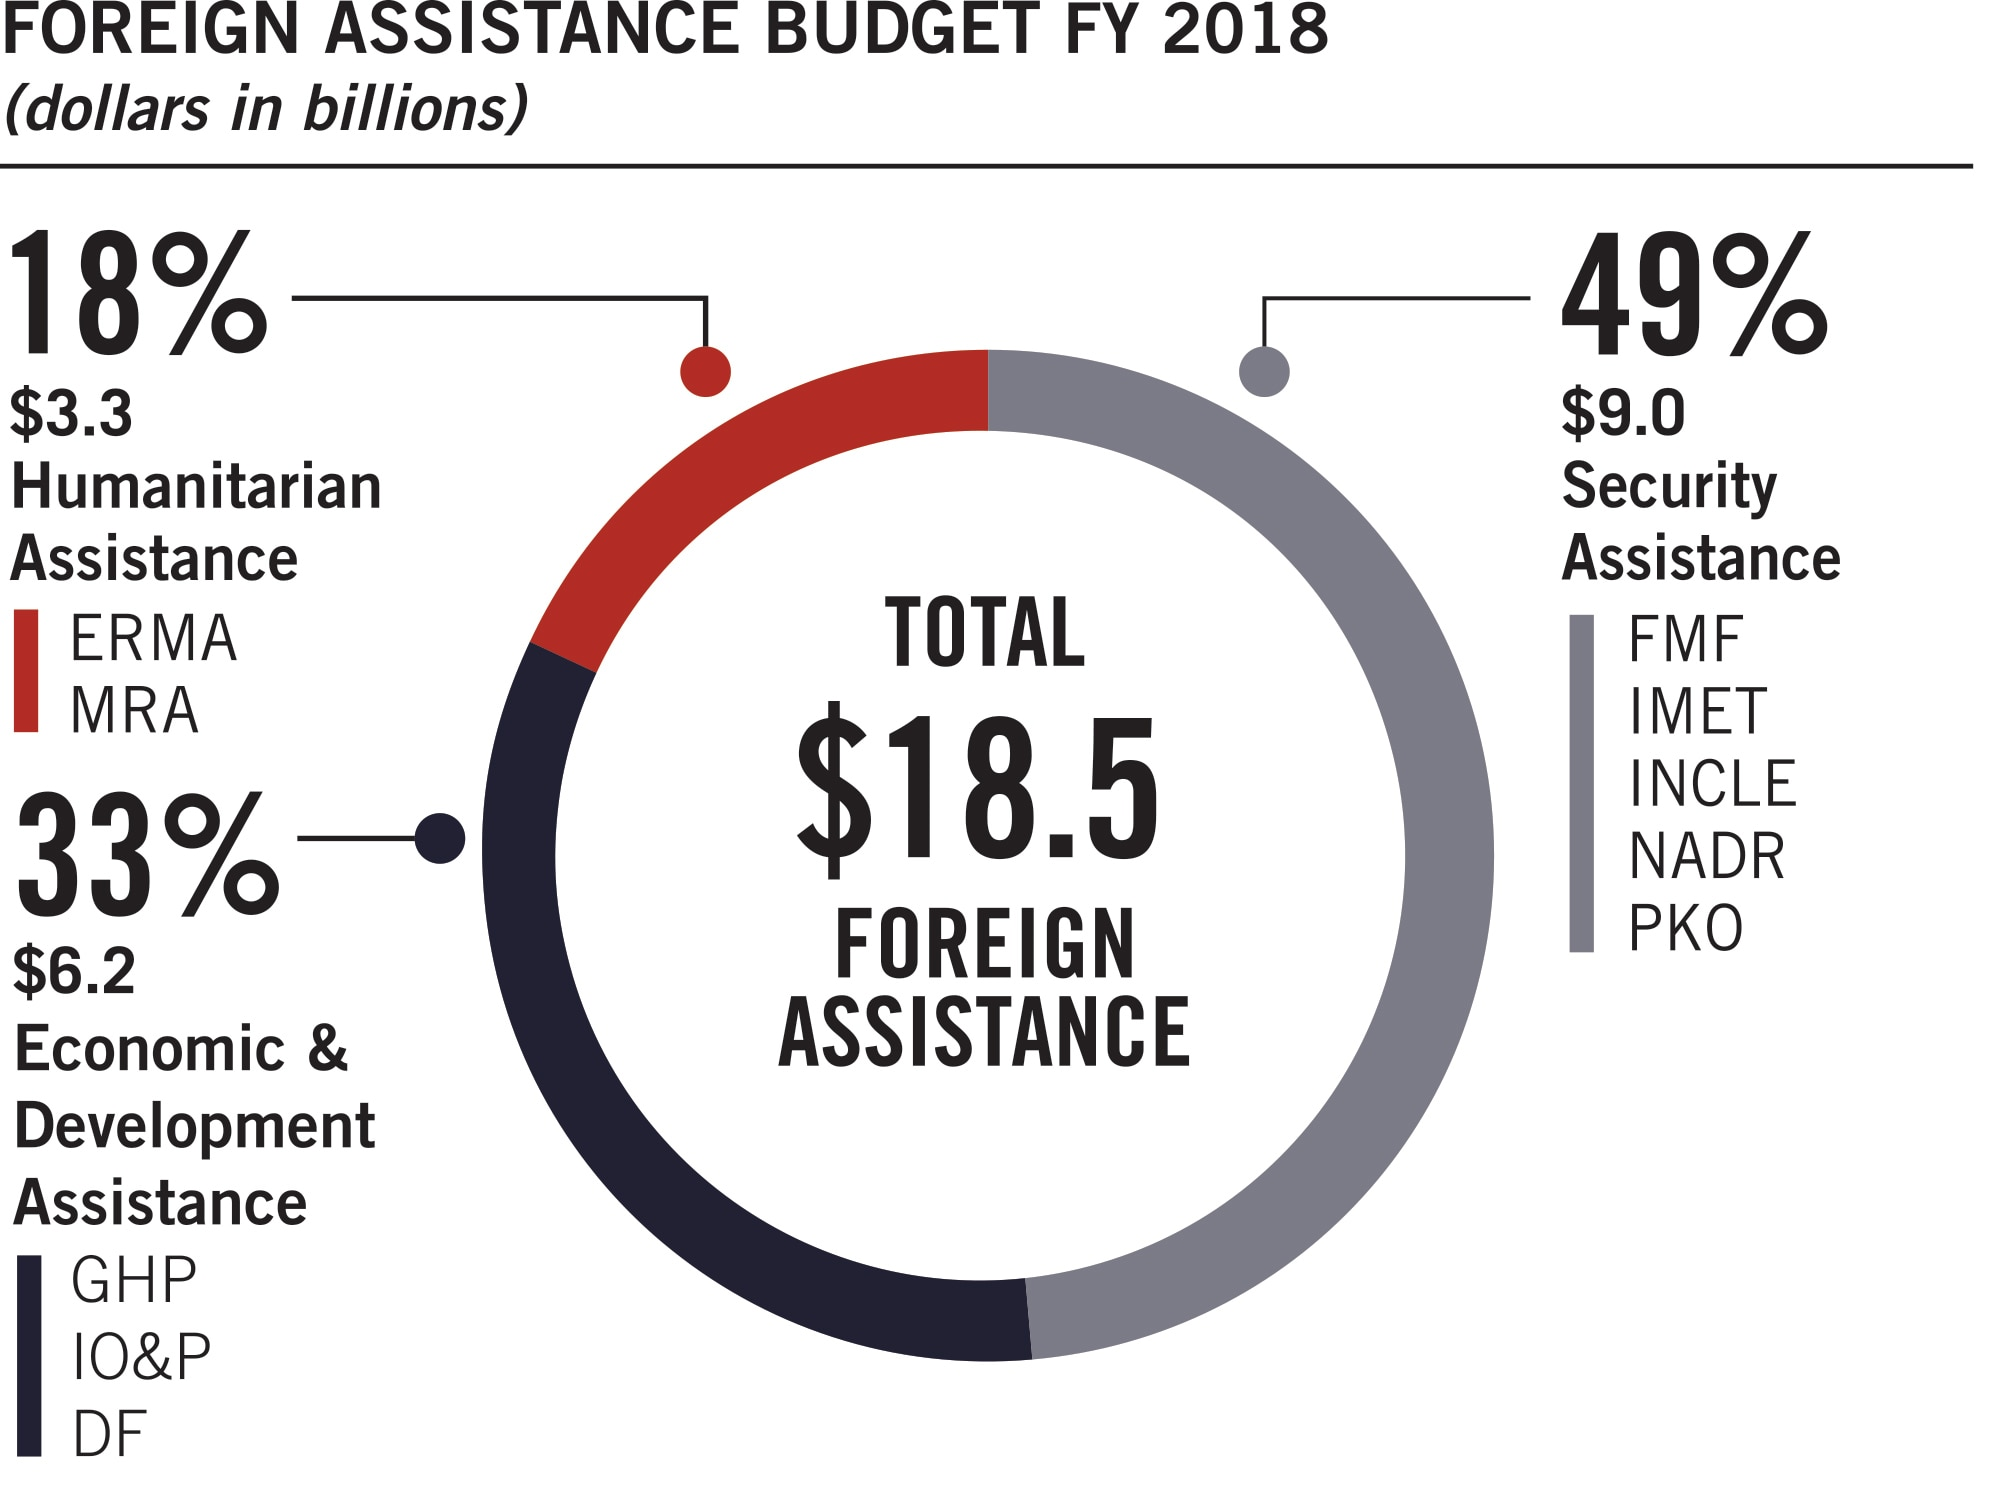 Pie chart summarizing the foreign assistance budget at September 30, 2018. Values are as follows: Security Assistance (FMF, IMET, INCLE, NADR, and PKO): $9.0 billion, 49%. Economic and Development Assistance (GHP, IO&P, and DF): $6.2 billion, 33%. Humanitarian Assistance (ERMA and MRA): $3.3 billion, 18%. Total Foreign Assistance: $18.5 billion.